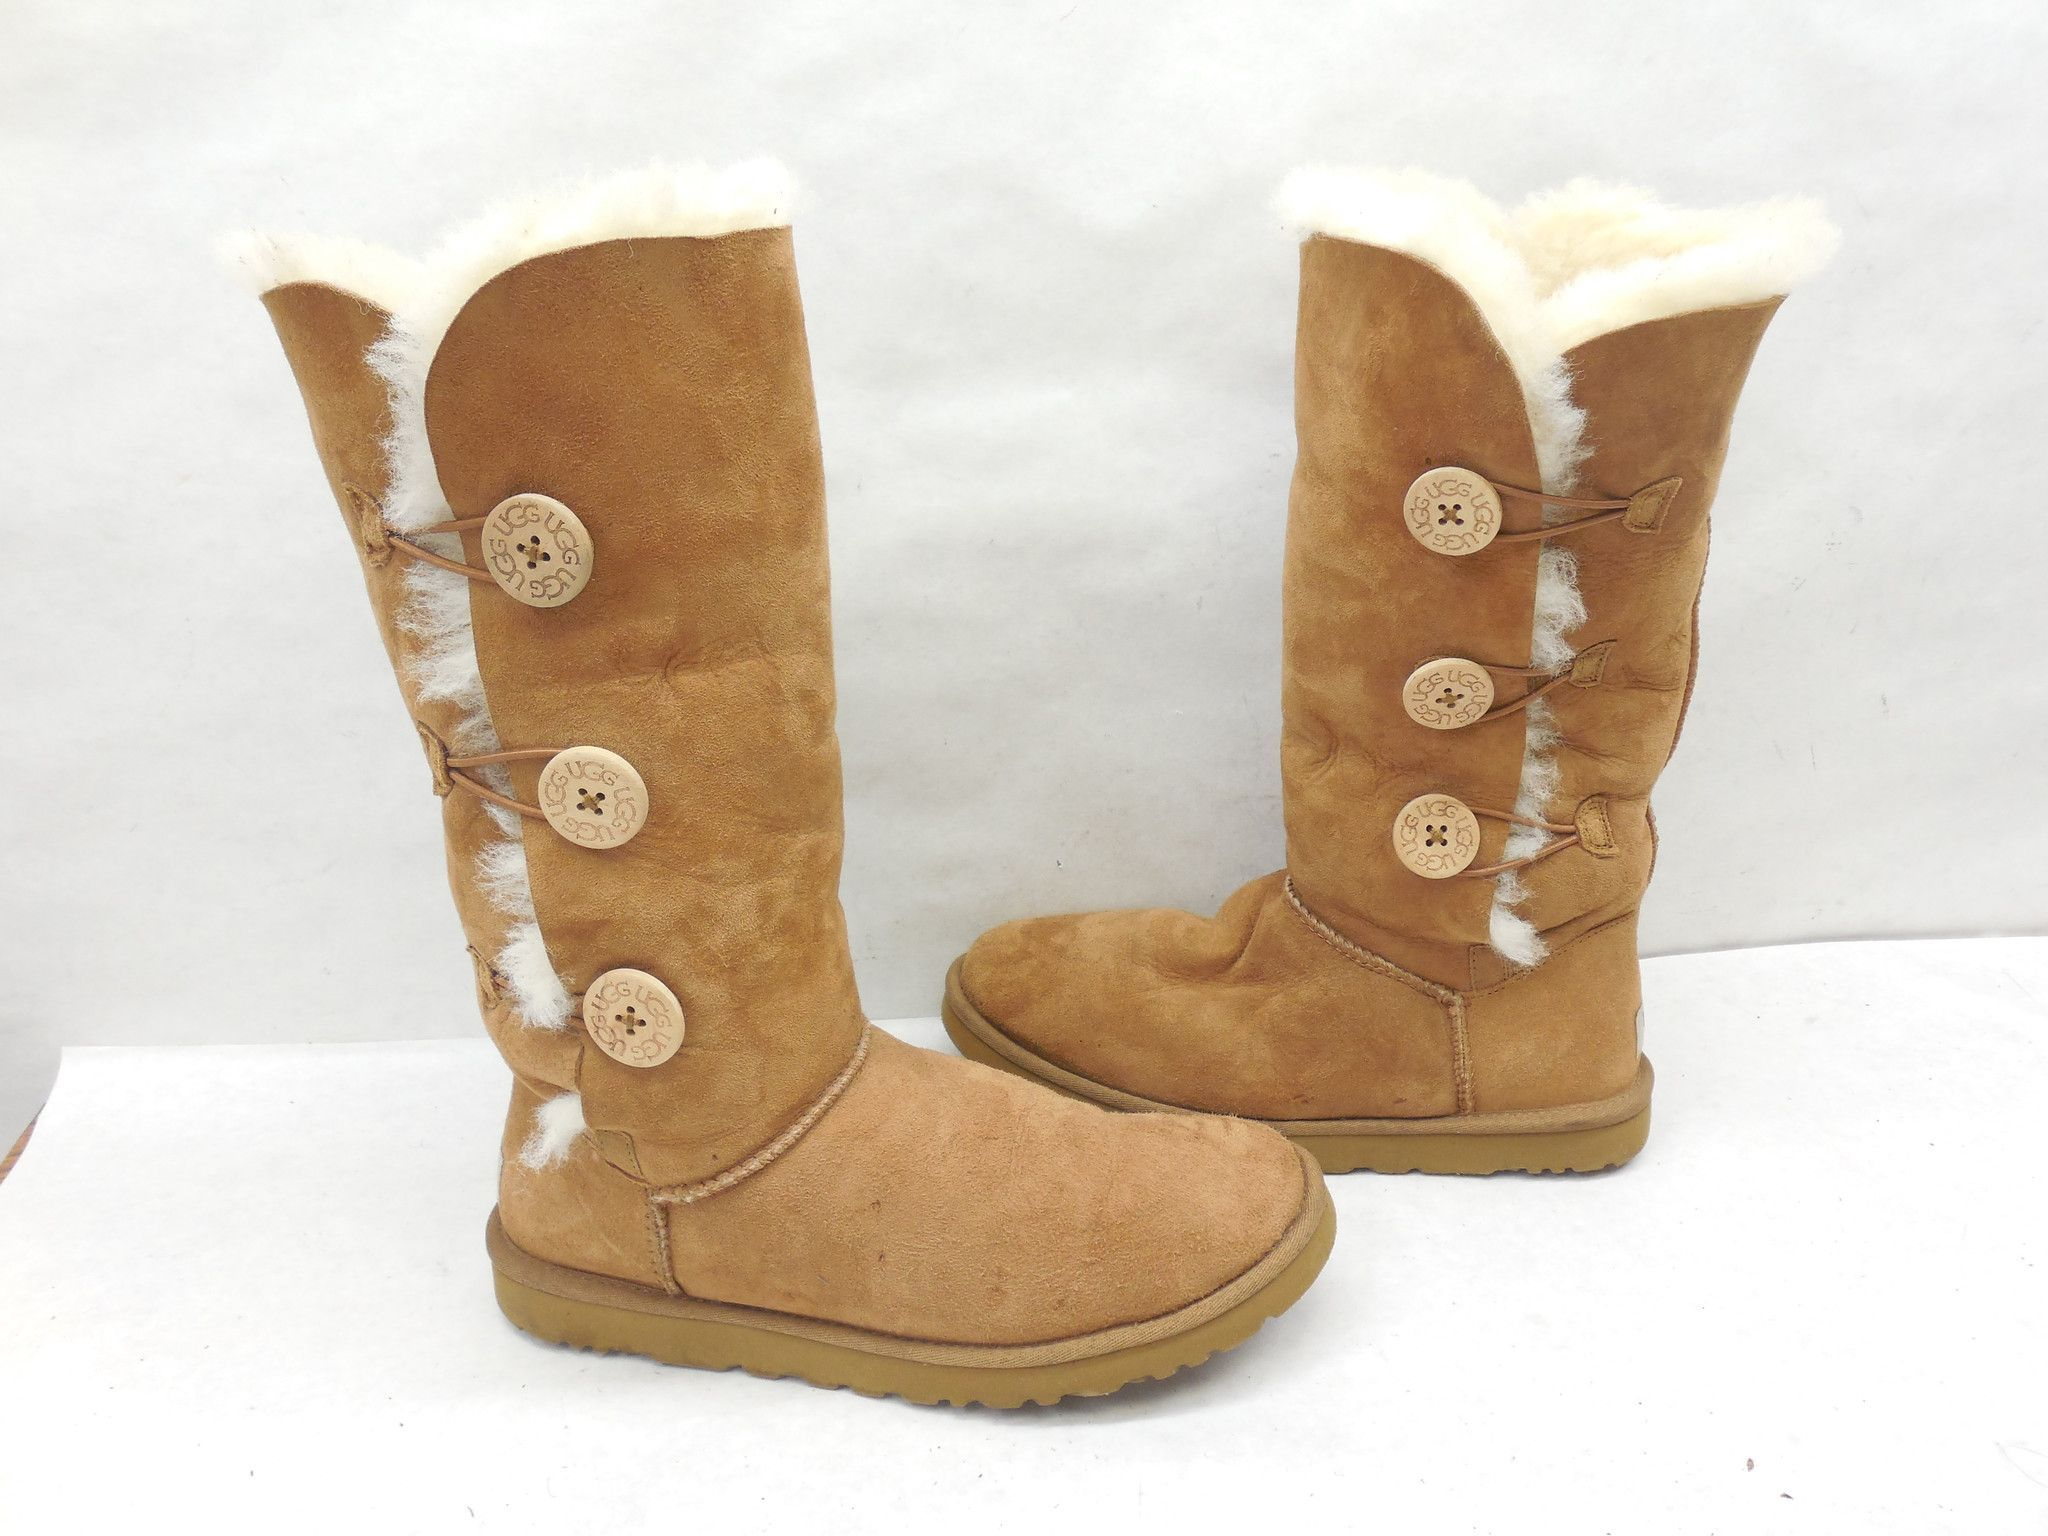 789cbb27293 New UGG Australia 1873 Chestnut Bailey Button Triplet Boots Size 8 ...